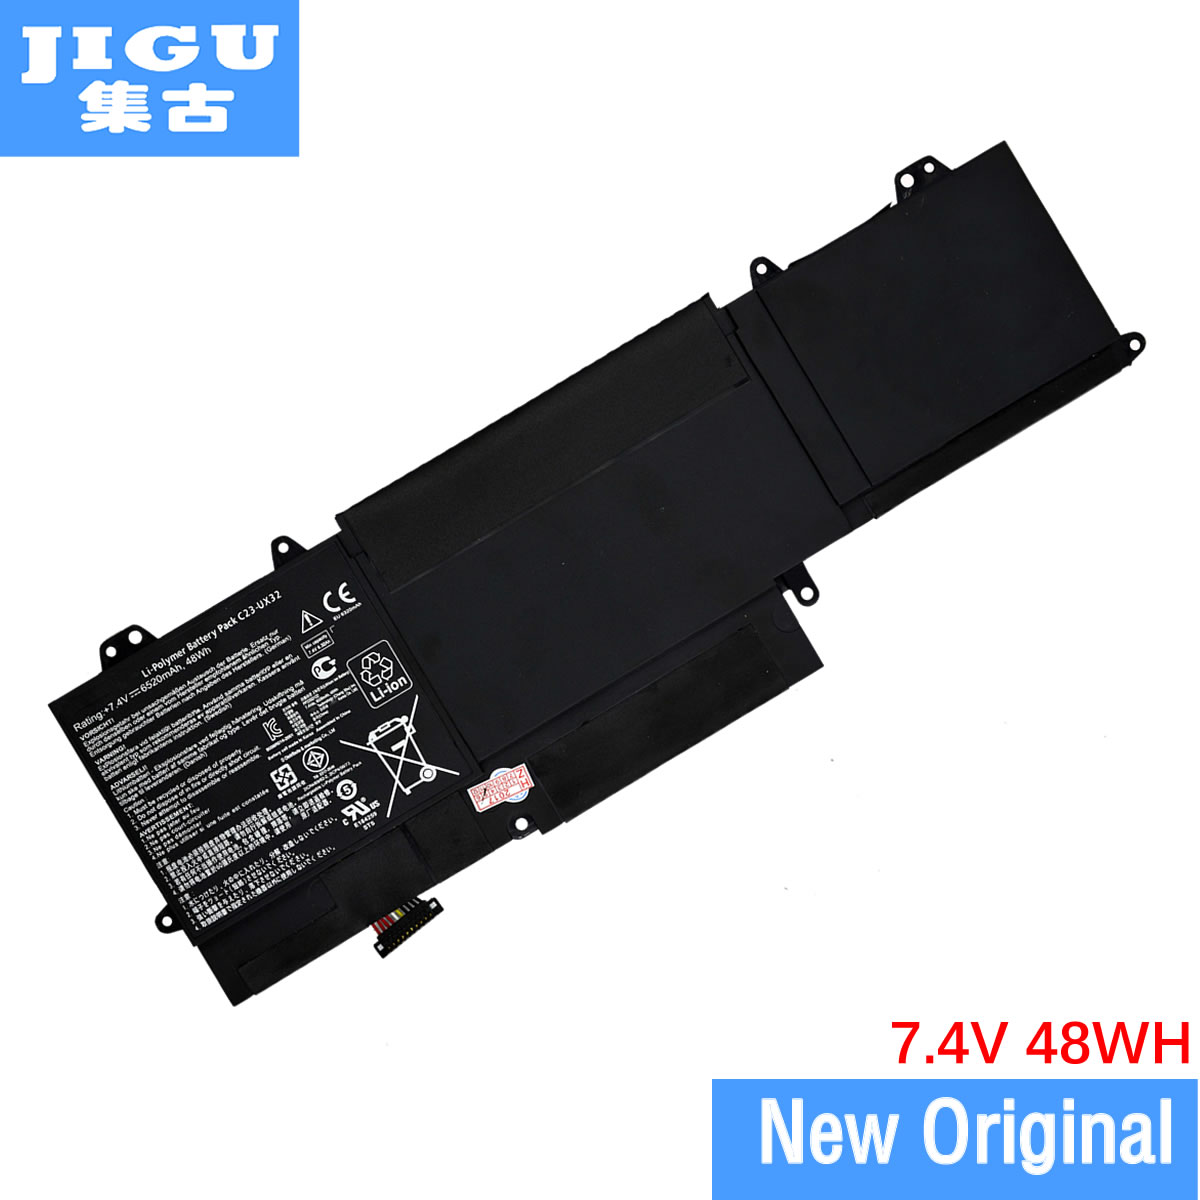 все цены на JIGU C23-UX32 Original laptop Battery For Asus for VivoBook U38N U38K U38DT for Zenbook UX32 UX32VD UX32LA 7.4V 48WH онлайн